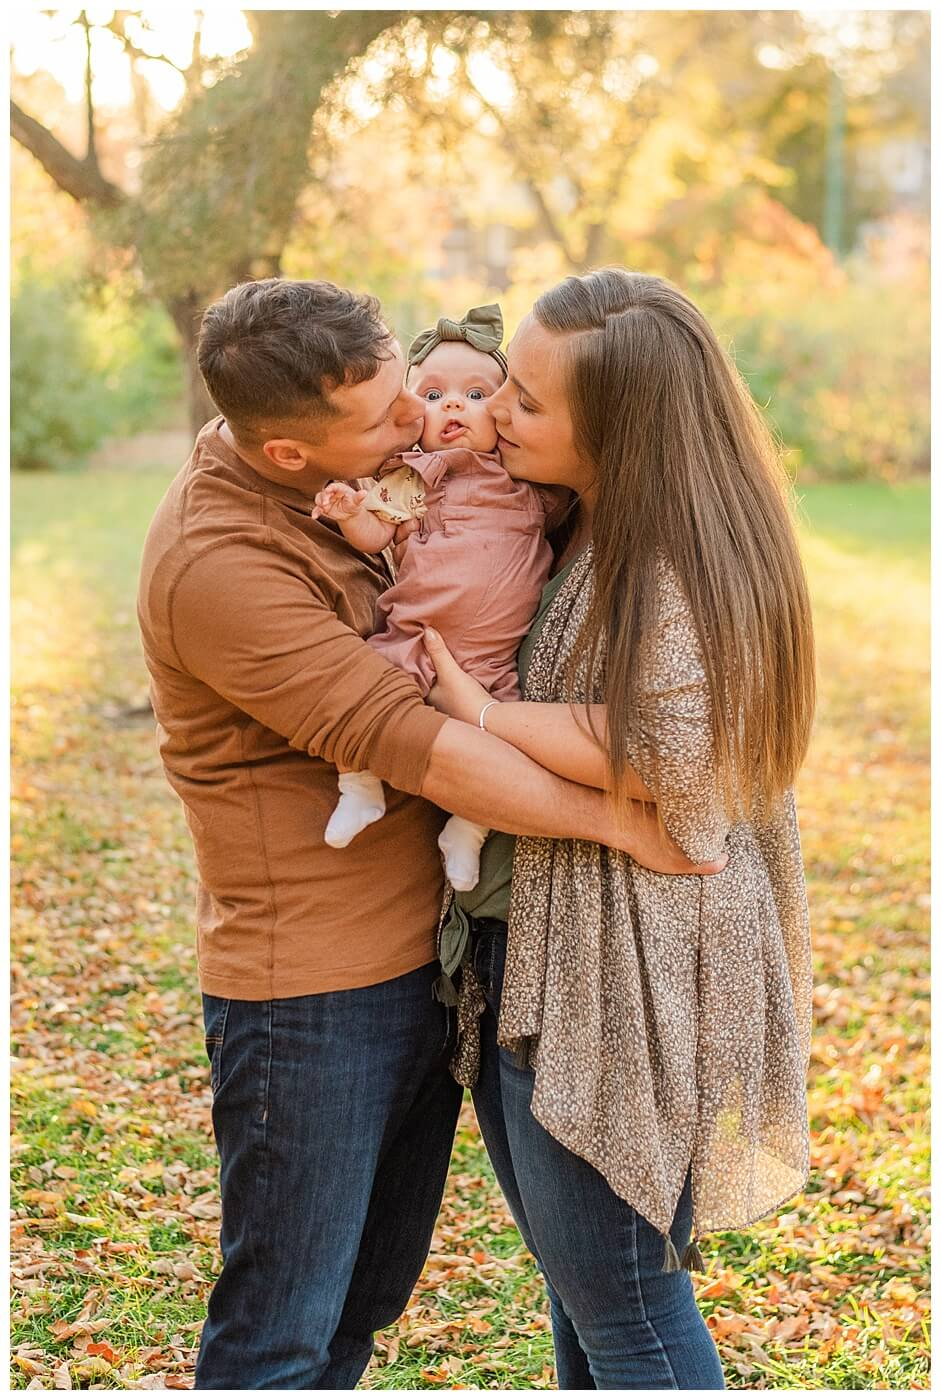 Filby Family - Regina Family Photography - Wascana Park - 07 - Mom and dad giving baby kisses on both cheeks